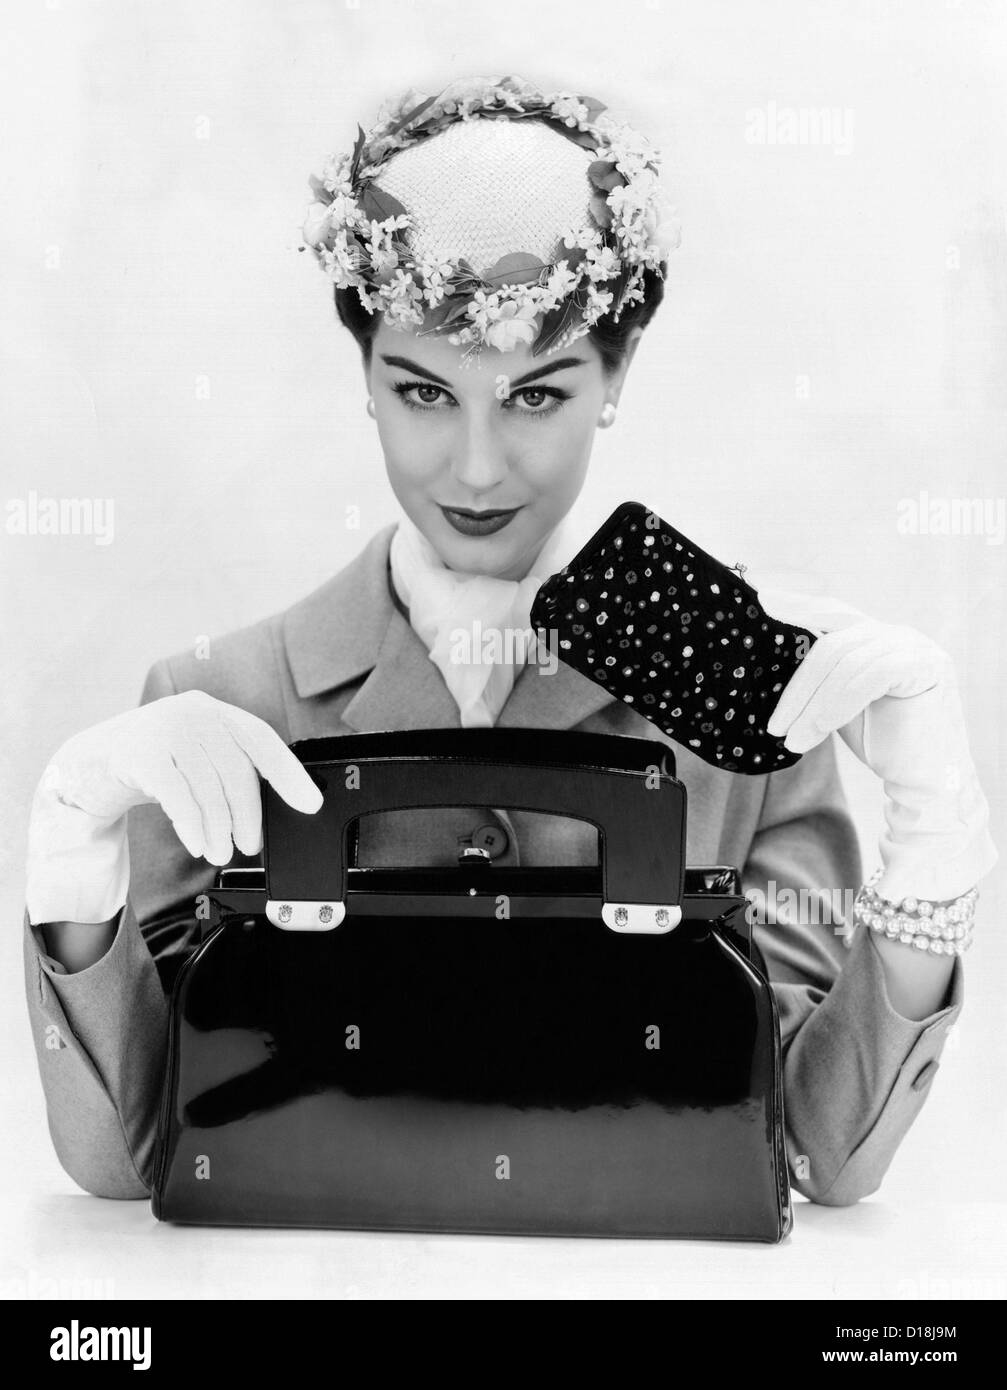 Women's accessories include a square cut, top opening, black patent leather purse. A small forward worn hat with Stock Photo